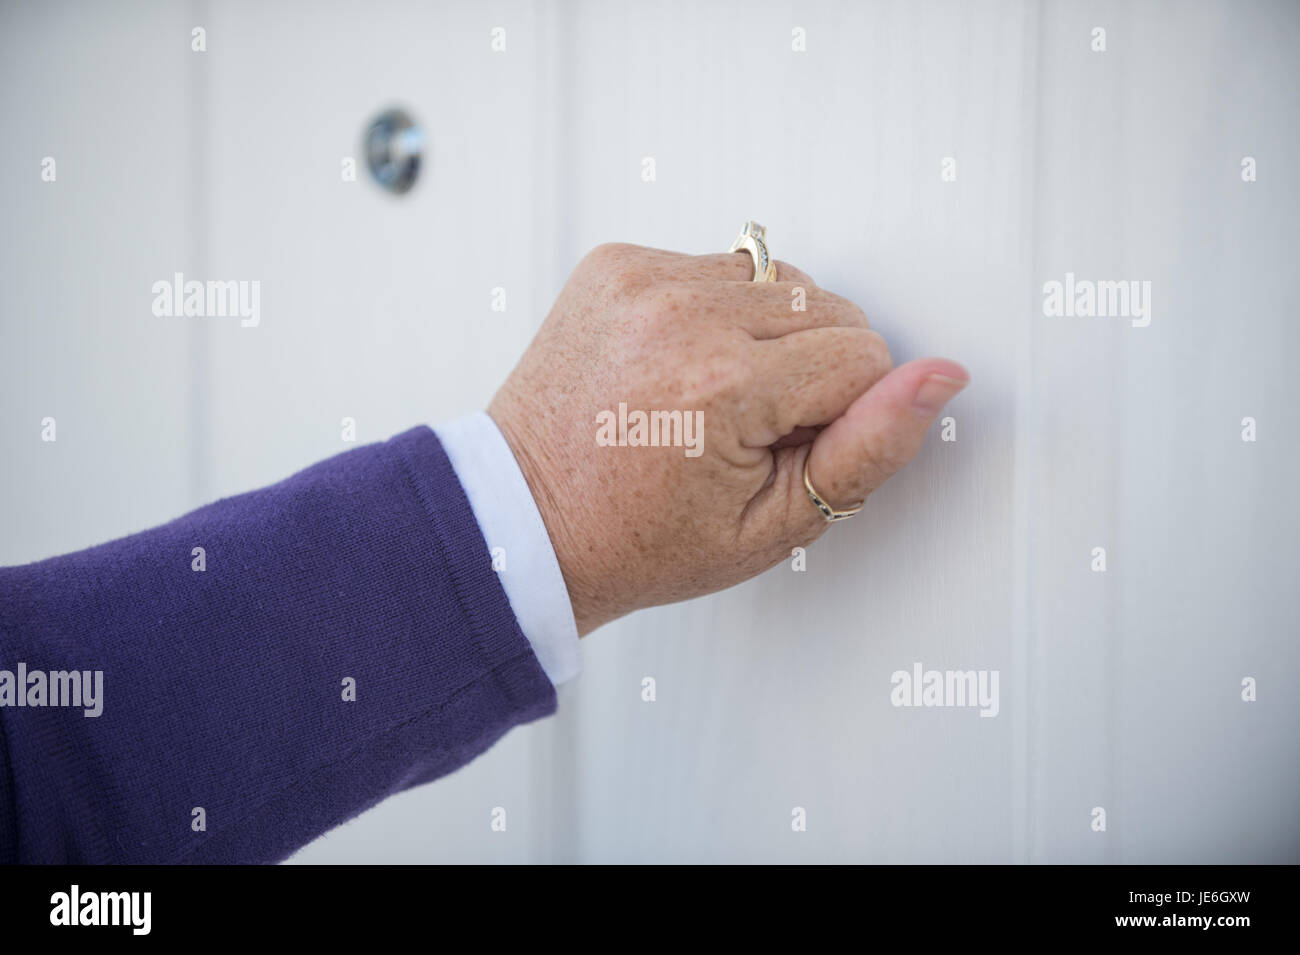 Copyrighted Image by Paul Slater/PSI - Generic image of a person knocking on a front door. - Stock Image